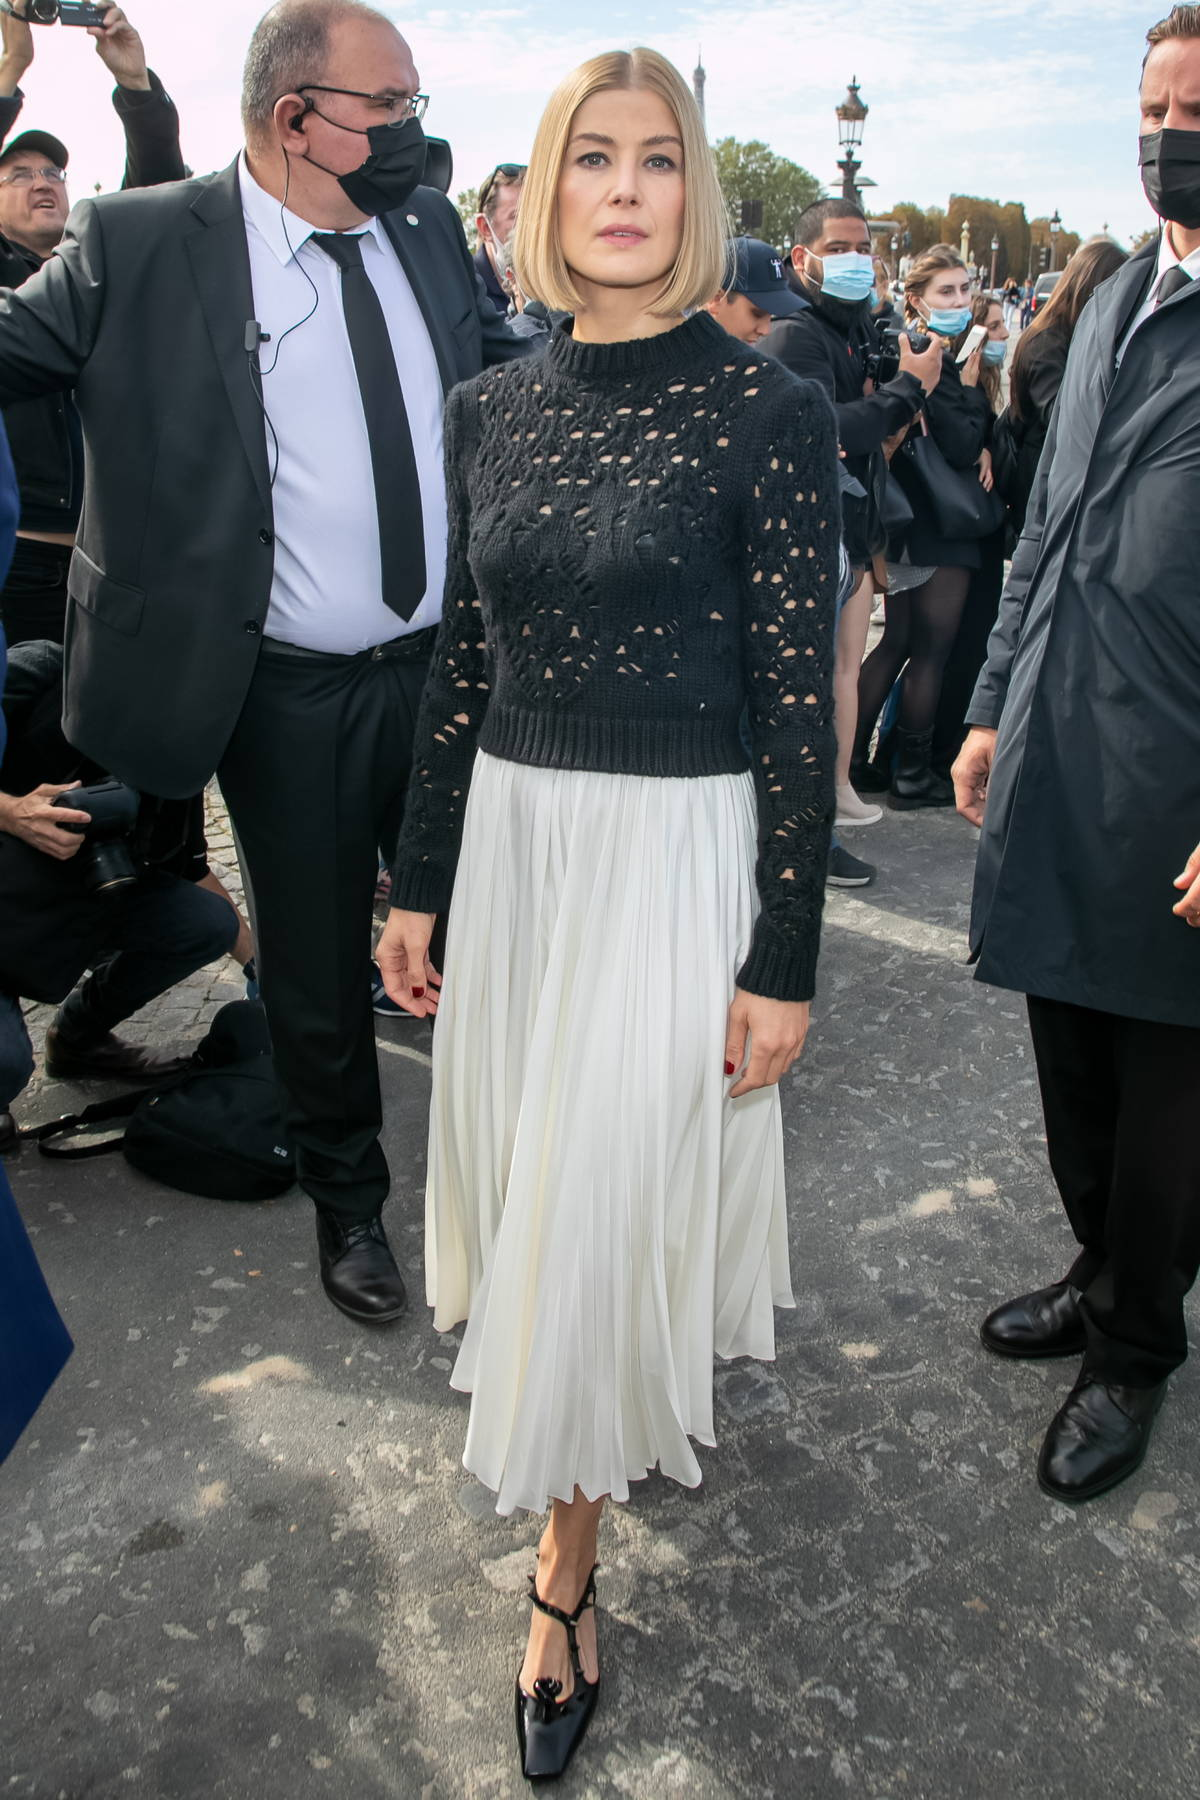 Rosamund Pike attends the Dior SS22 show during Paris Fashion Week in Paris, France